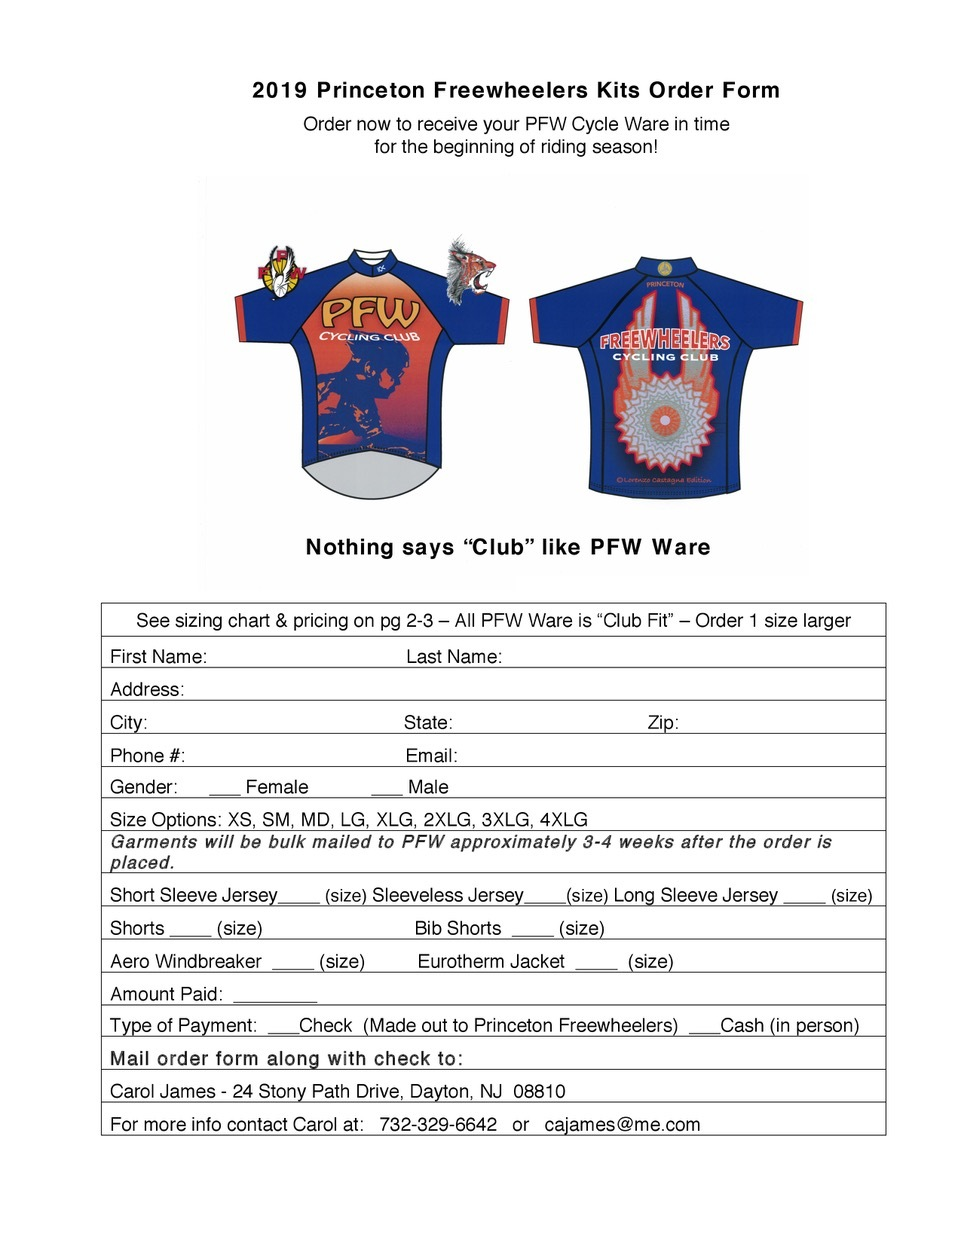 Club gear order form